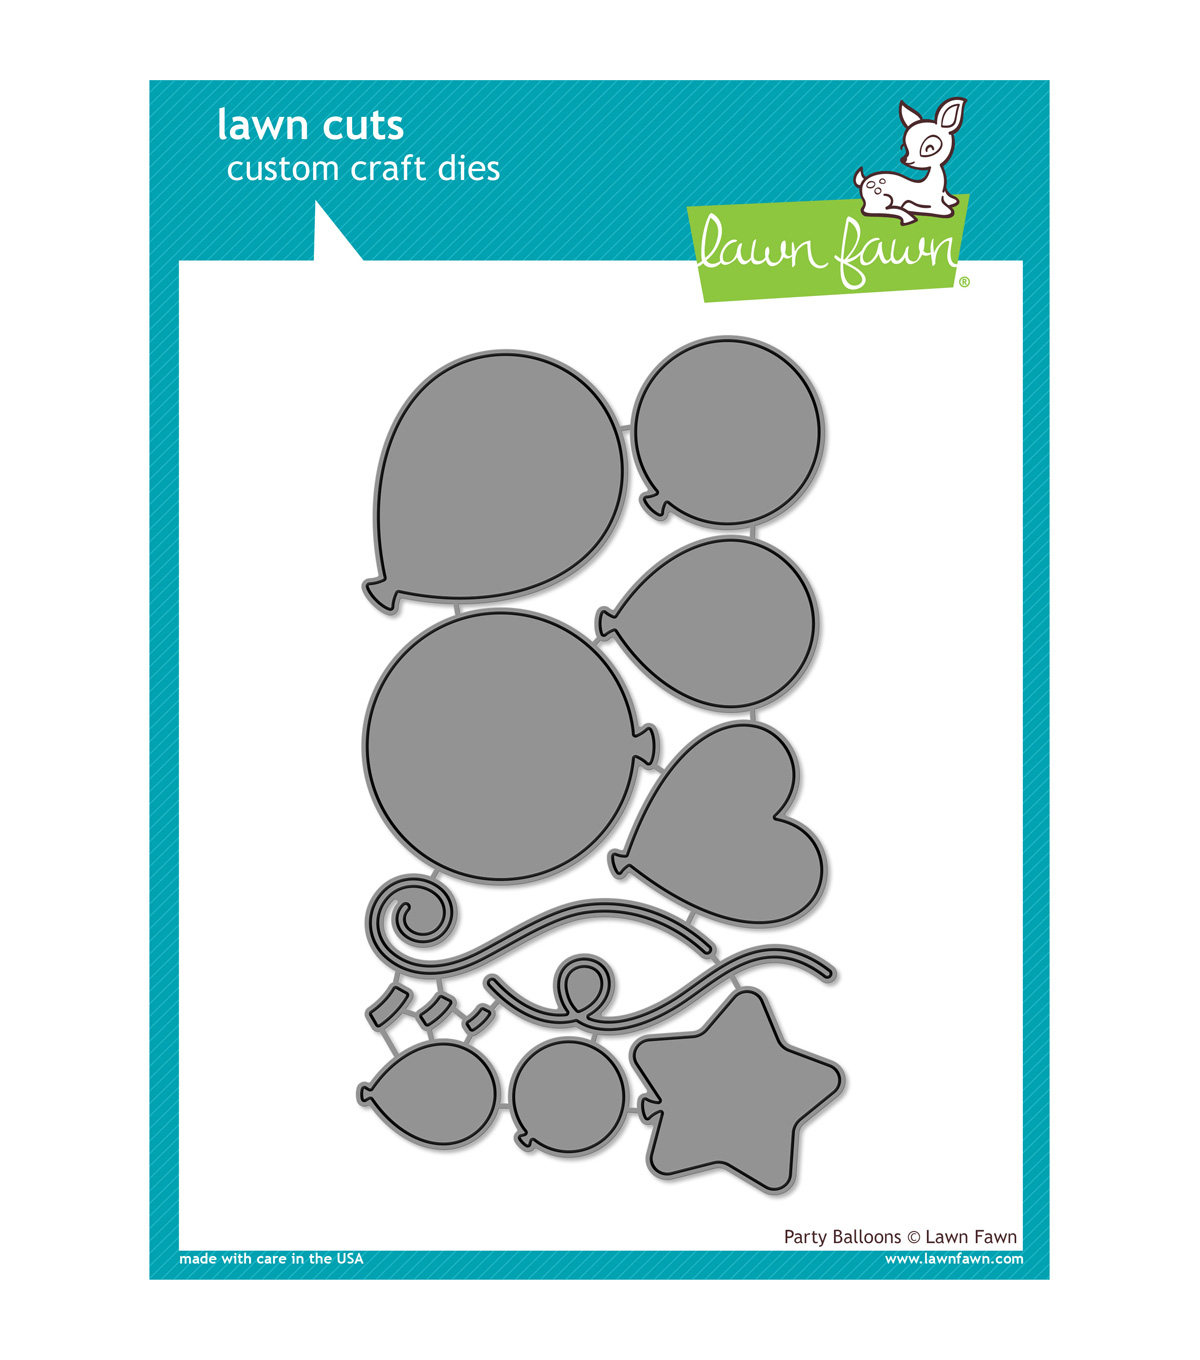 Lawn Fawn Lawn Cuts Custom Craft Die -Party Balloons